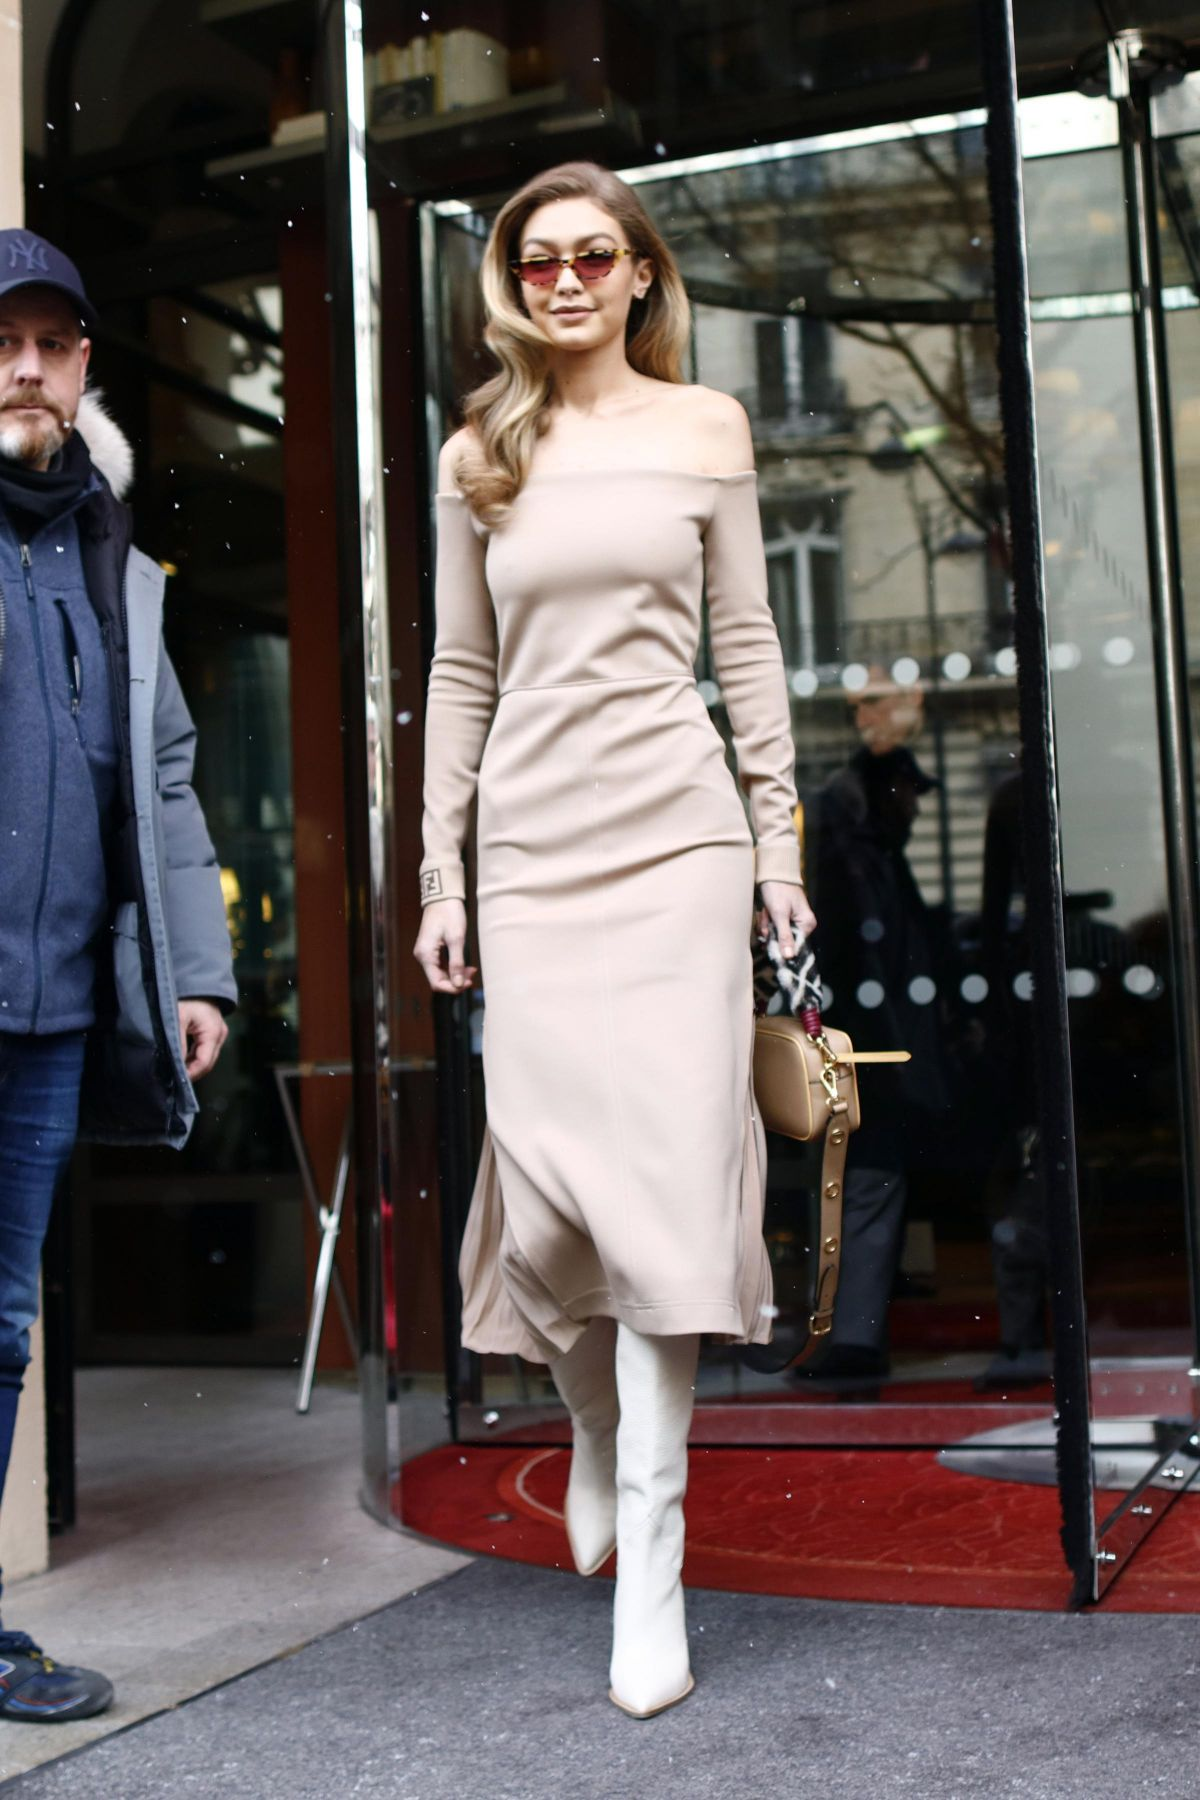 GIGI HADID Leave Le Royal Monceau Hotel in Paris 02/27/2018 - HawtCelebs